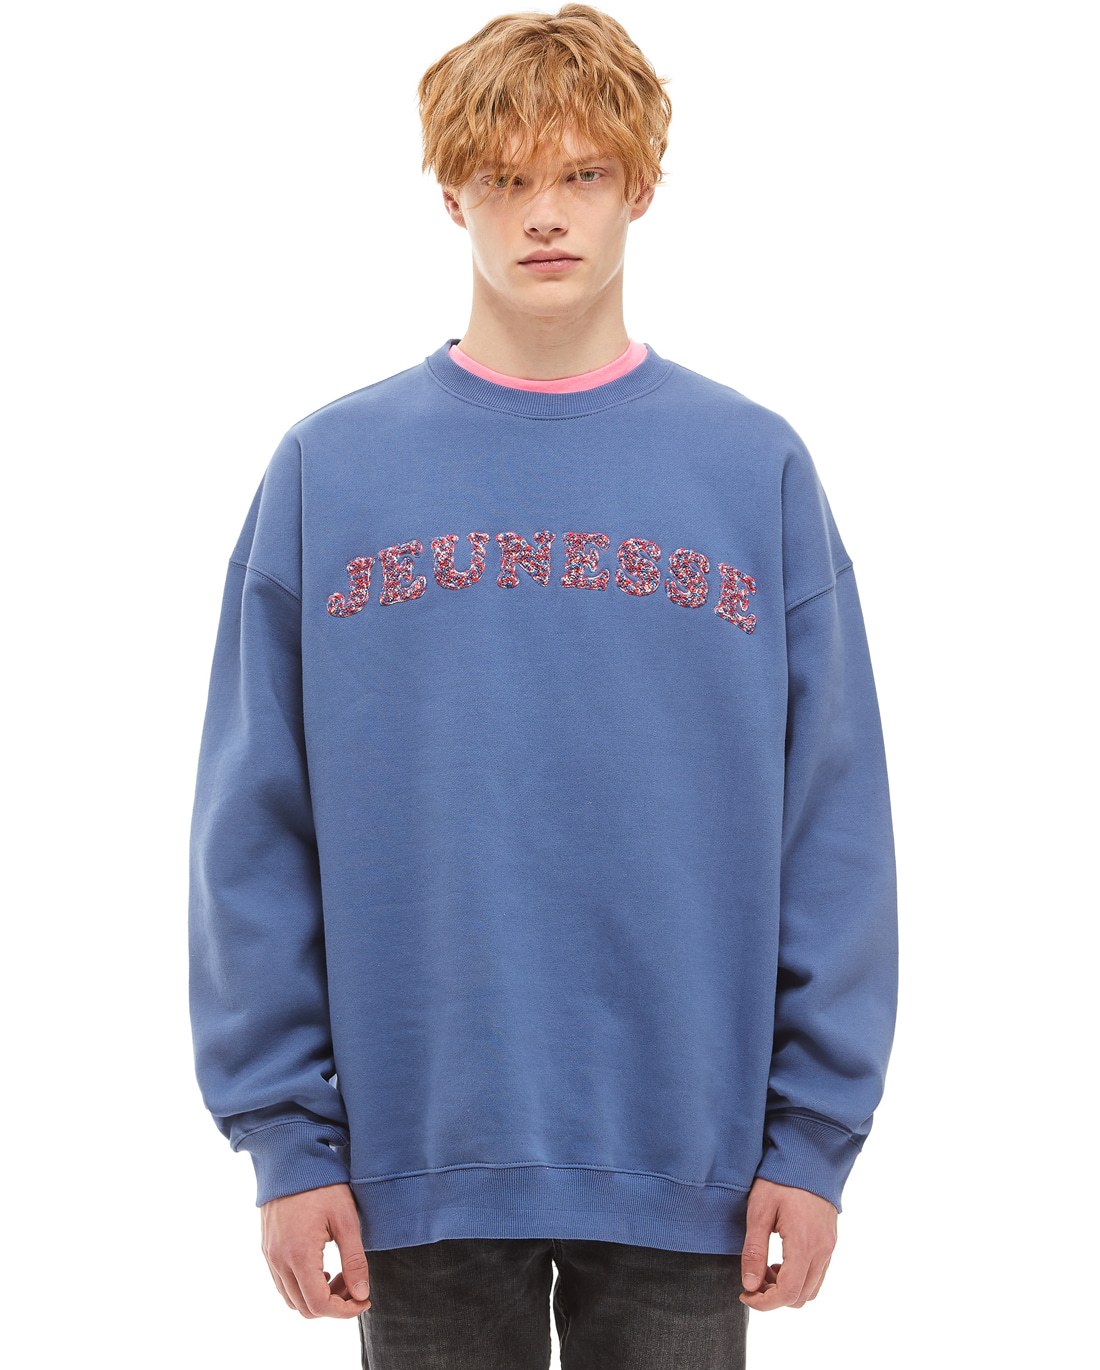 Chenille Embo Sweatshirts Skyblue (기모)